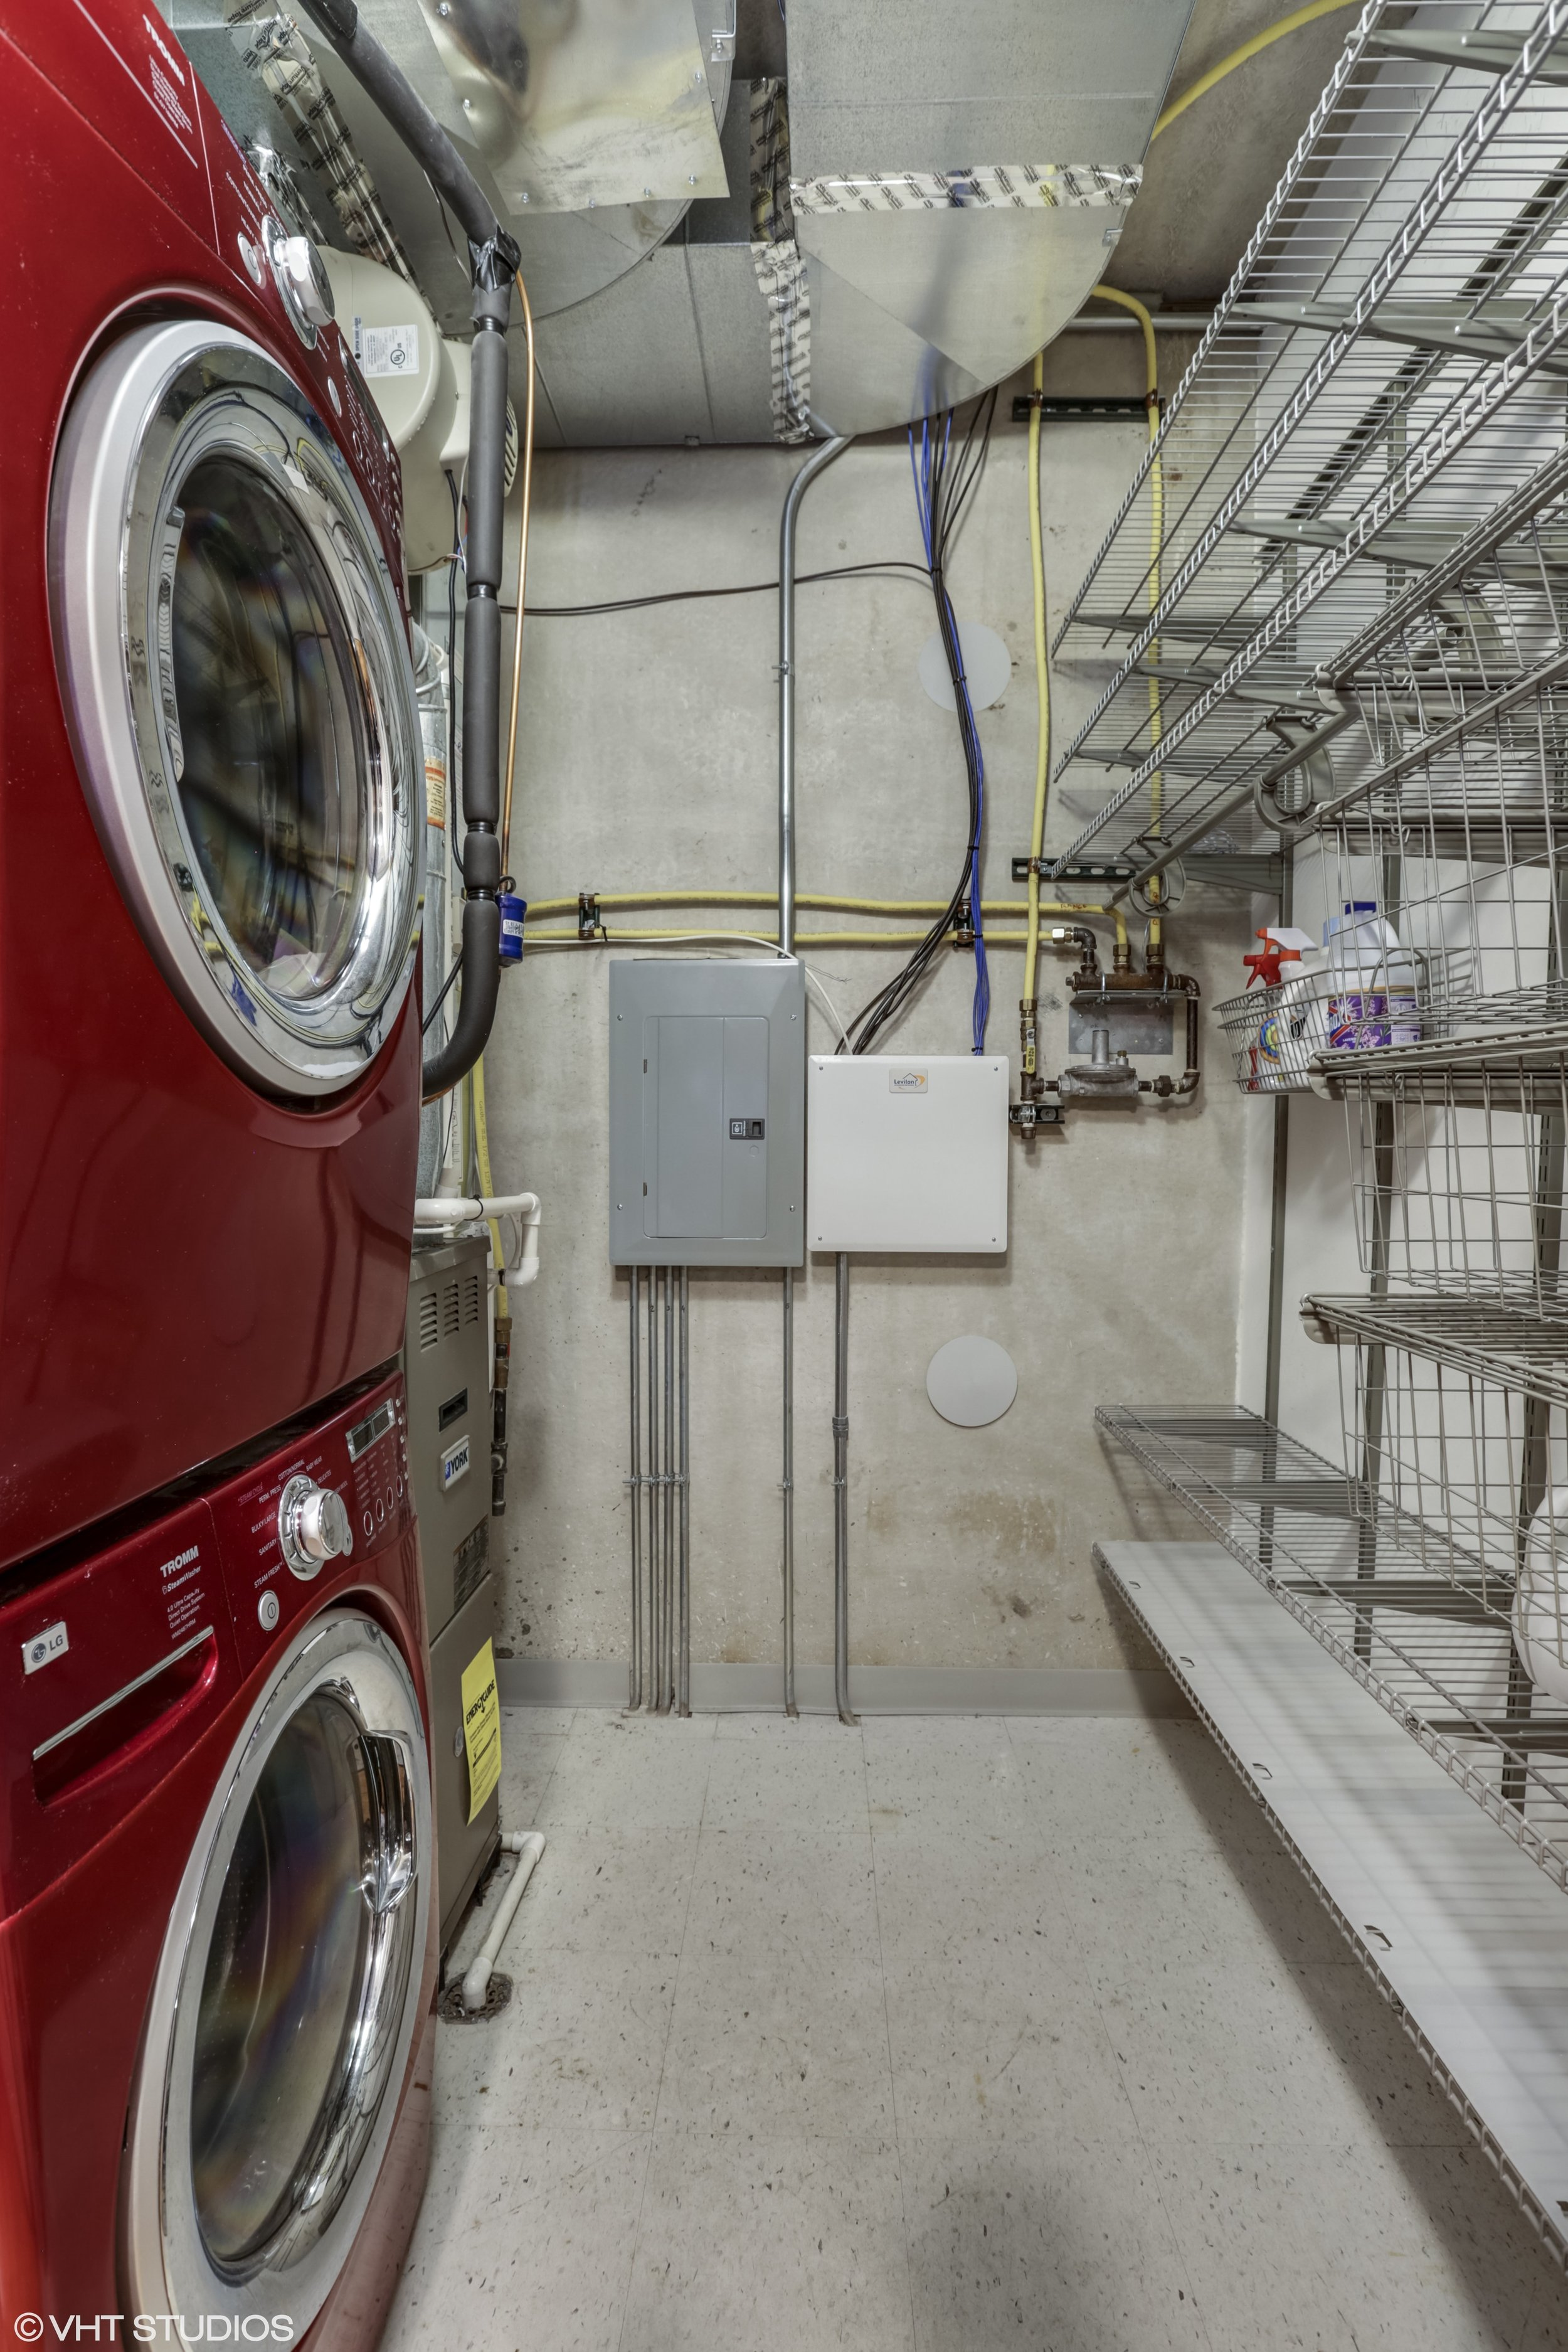 15_5430NorthSheridanRd_308_44_LaundryRoom_HiRes.jpg